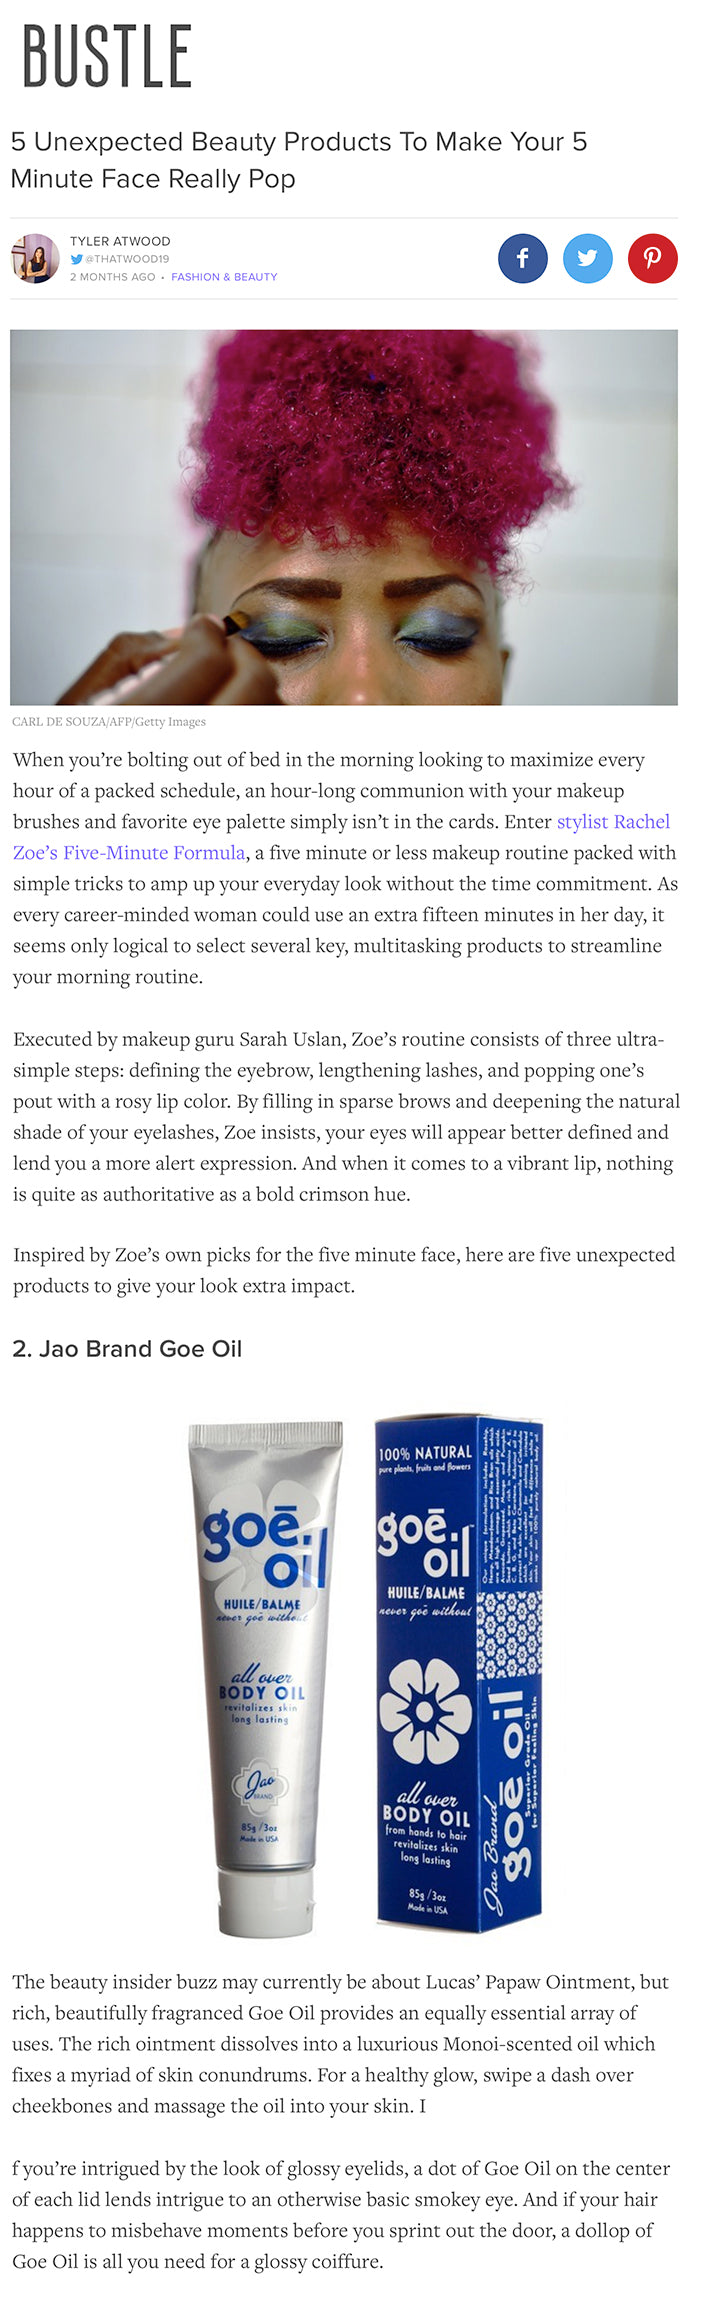 Bustle - 5 Unexpected Beauty Products